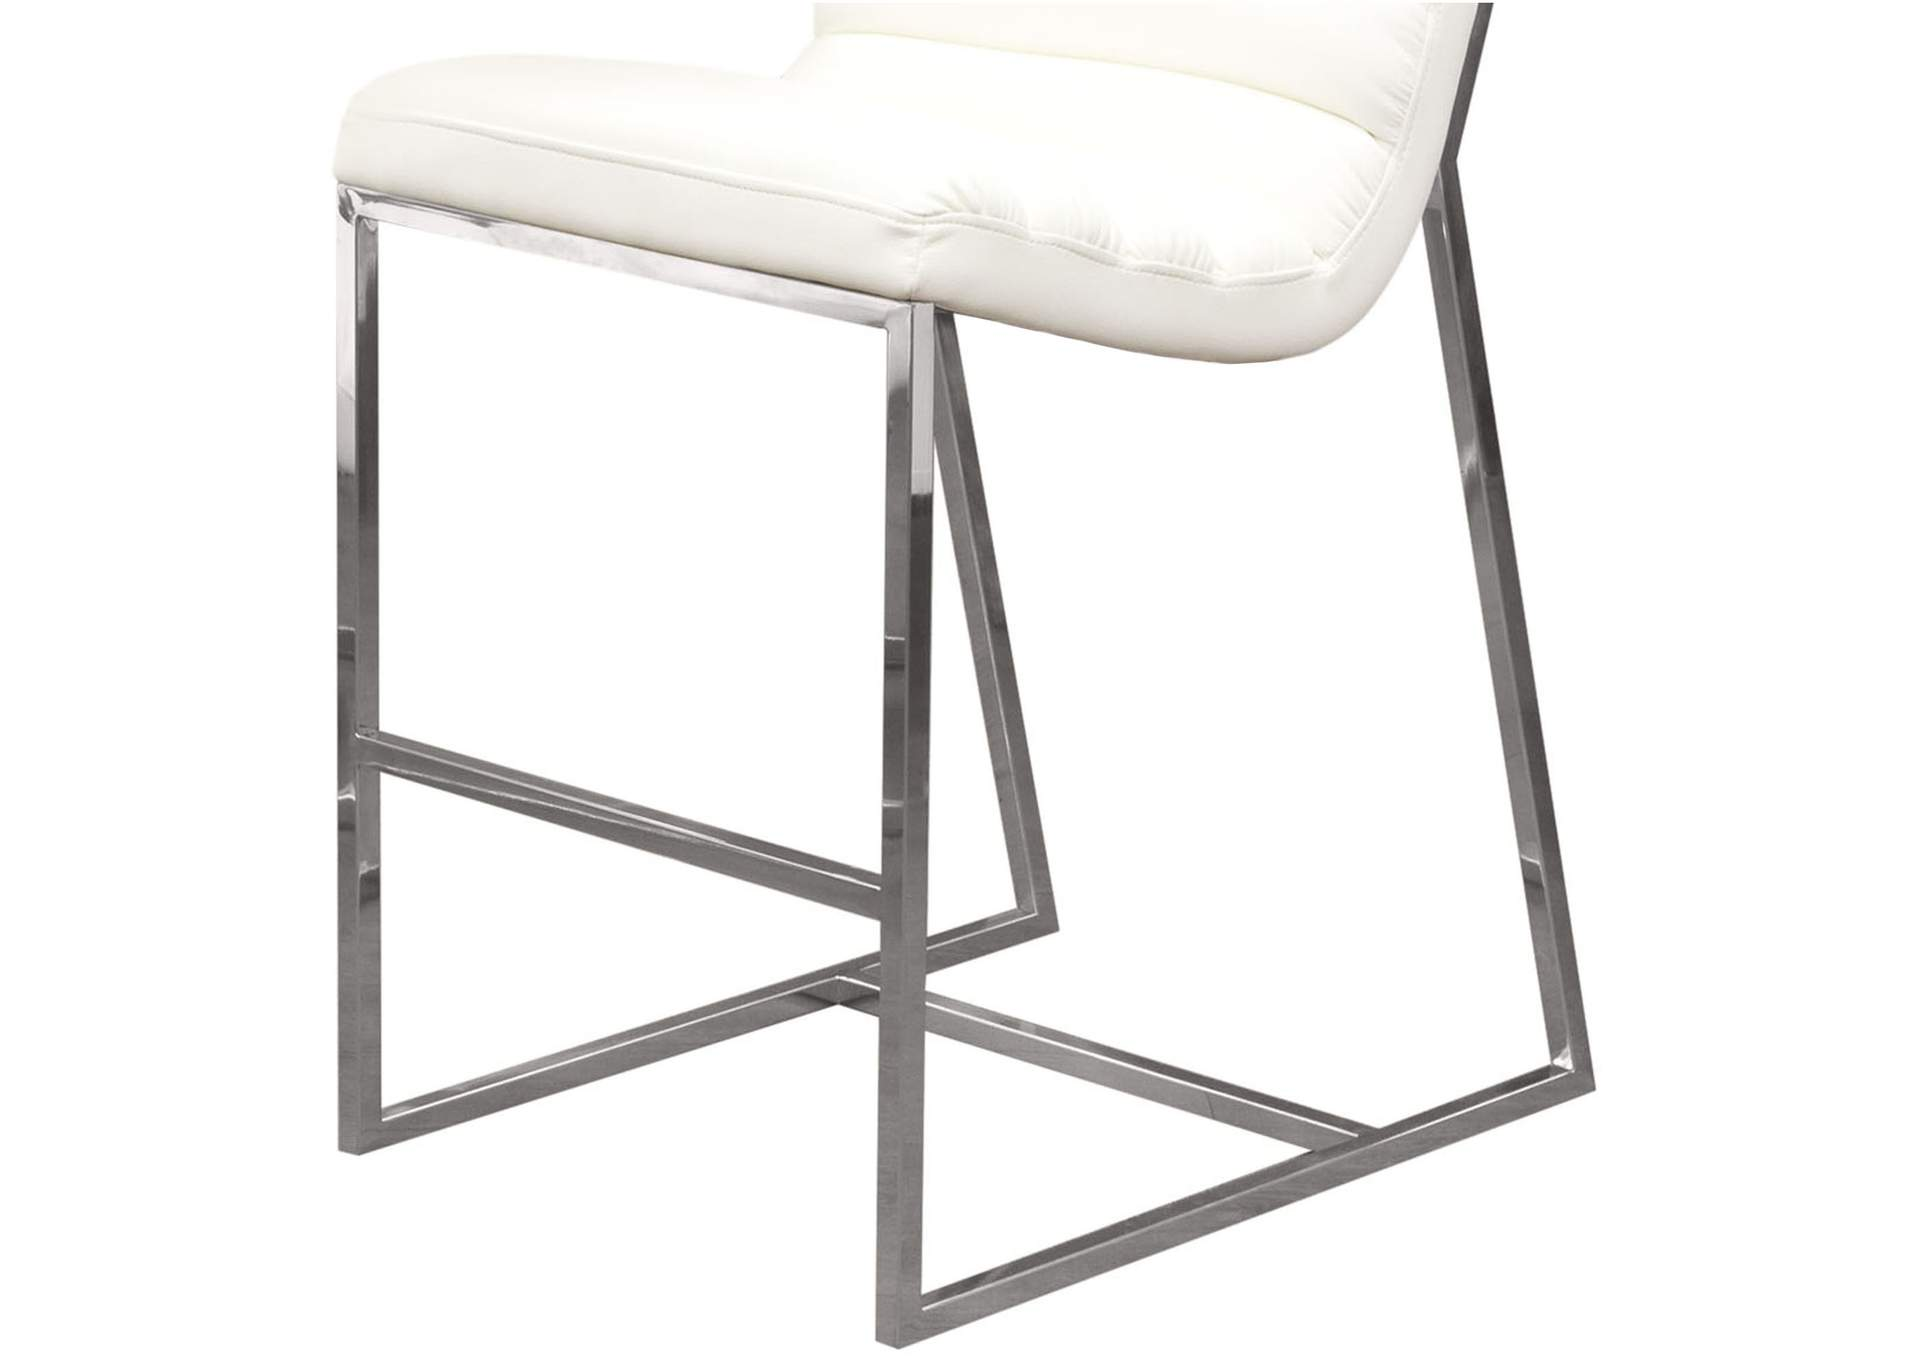 Bardot White Counter Height Chair W/ Stainless Steel Frame,Diamond Sofa